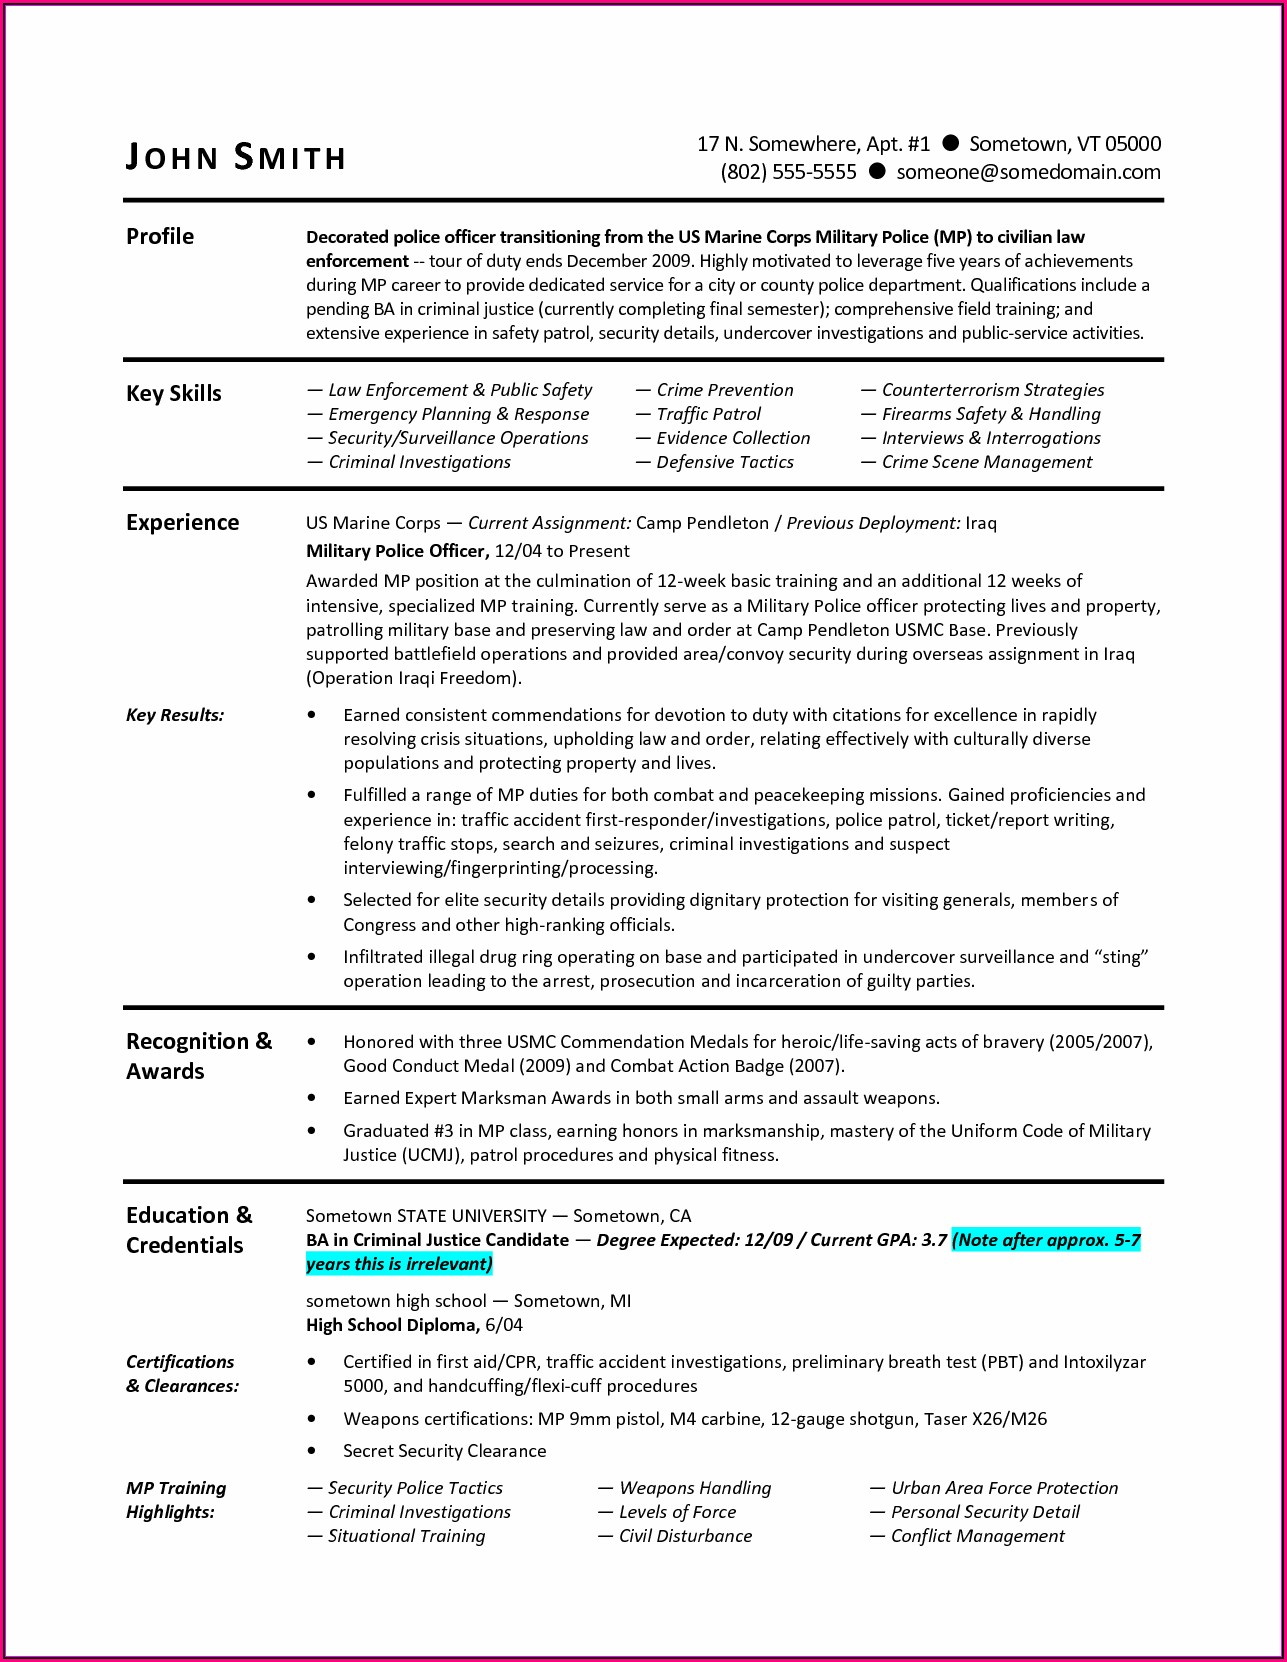 Military Resume Transition To Civilian Resume